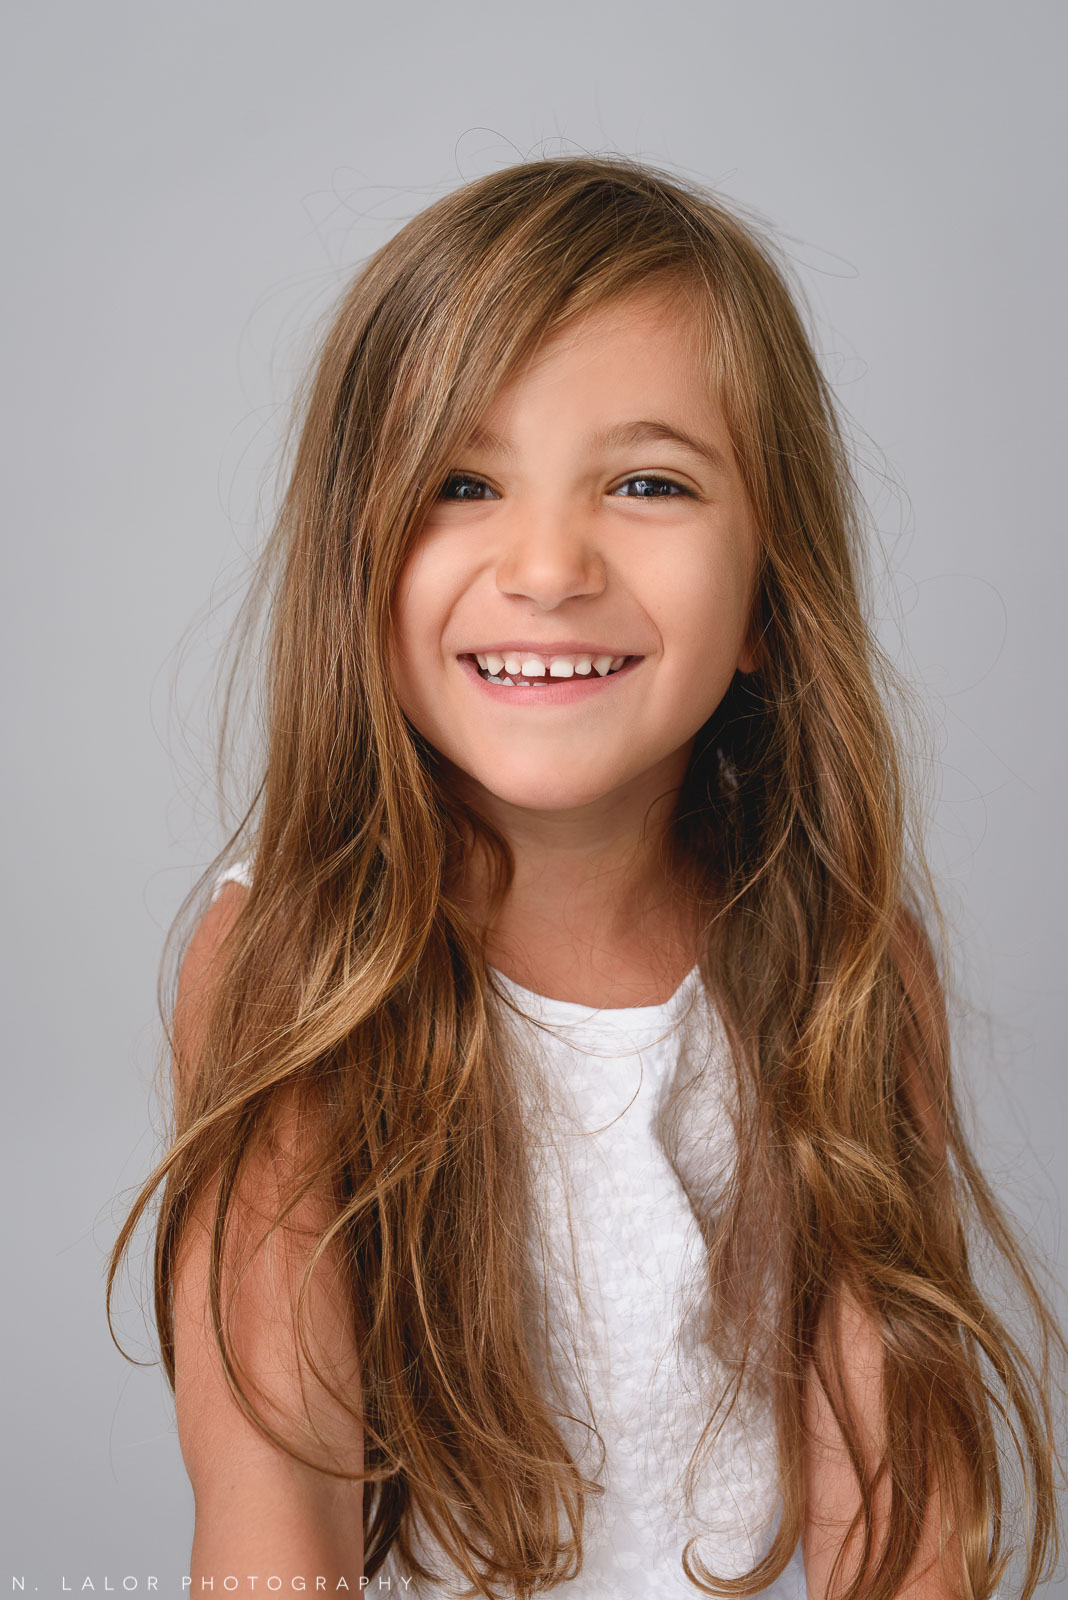 Image of a happy smiling girl with a great summer tan. Studio family portrait by N. Lalor Photography in Greenwich, CT.